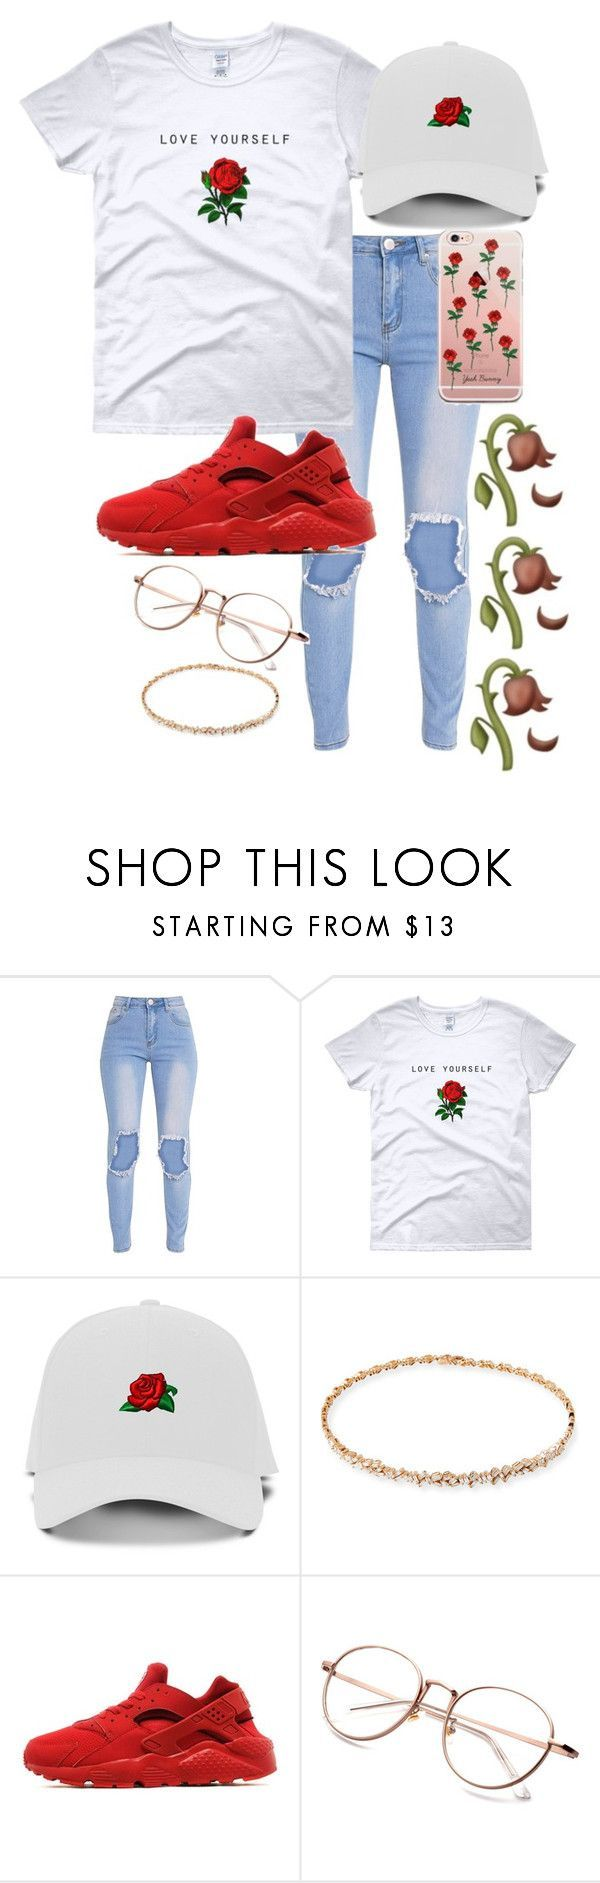 """Untitled #245"" by bxbysnoop ❤ liked on Polyvore featuring Suzanne Kalan and NIKE http://amzn.to/2stx5H7"